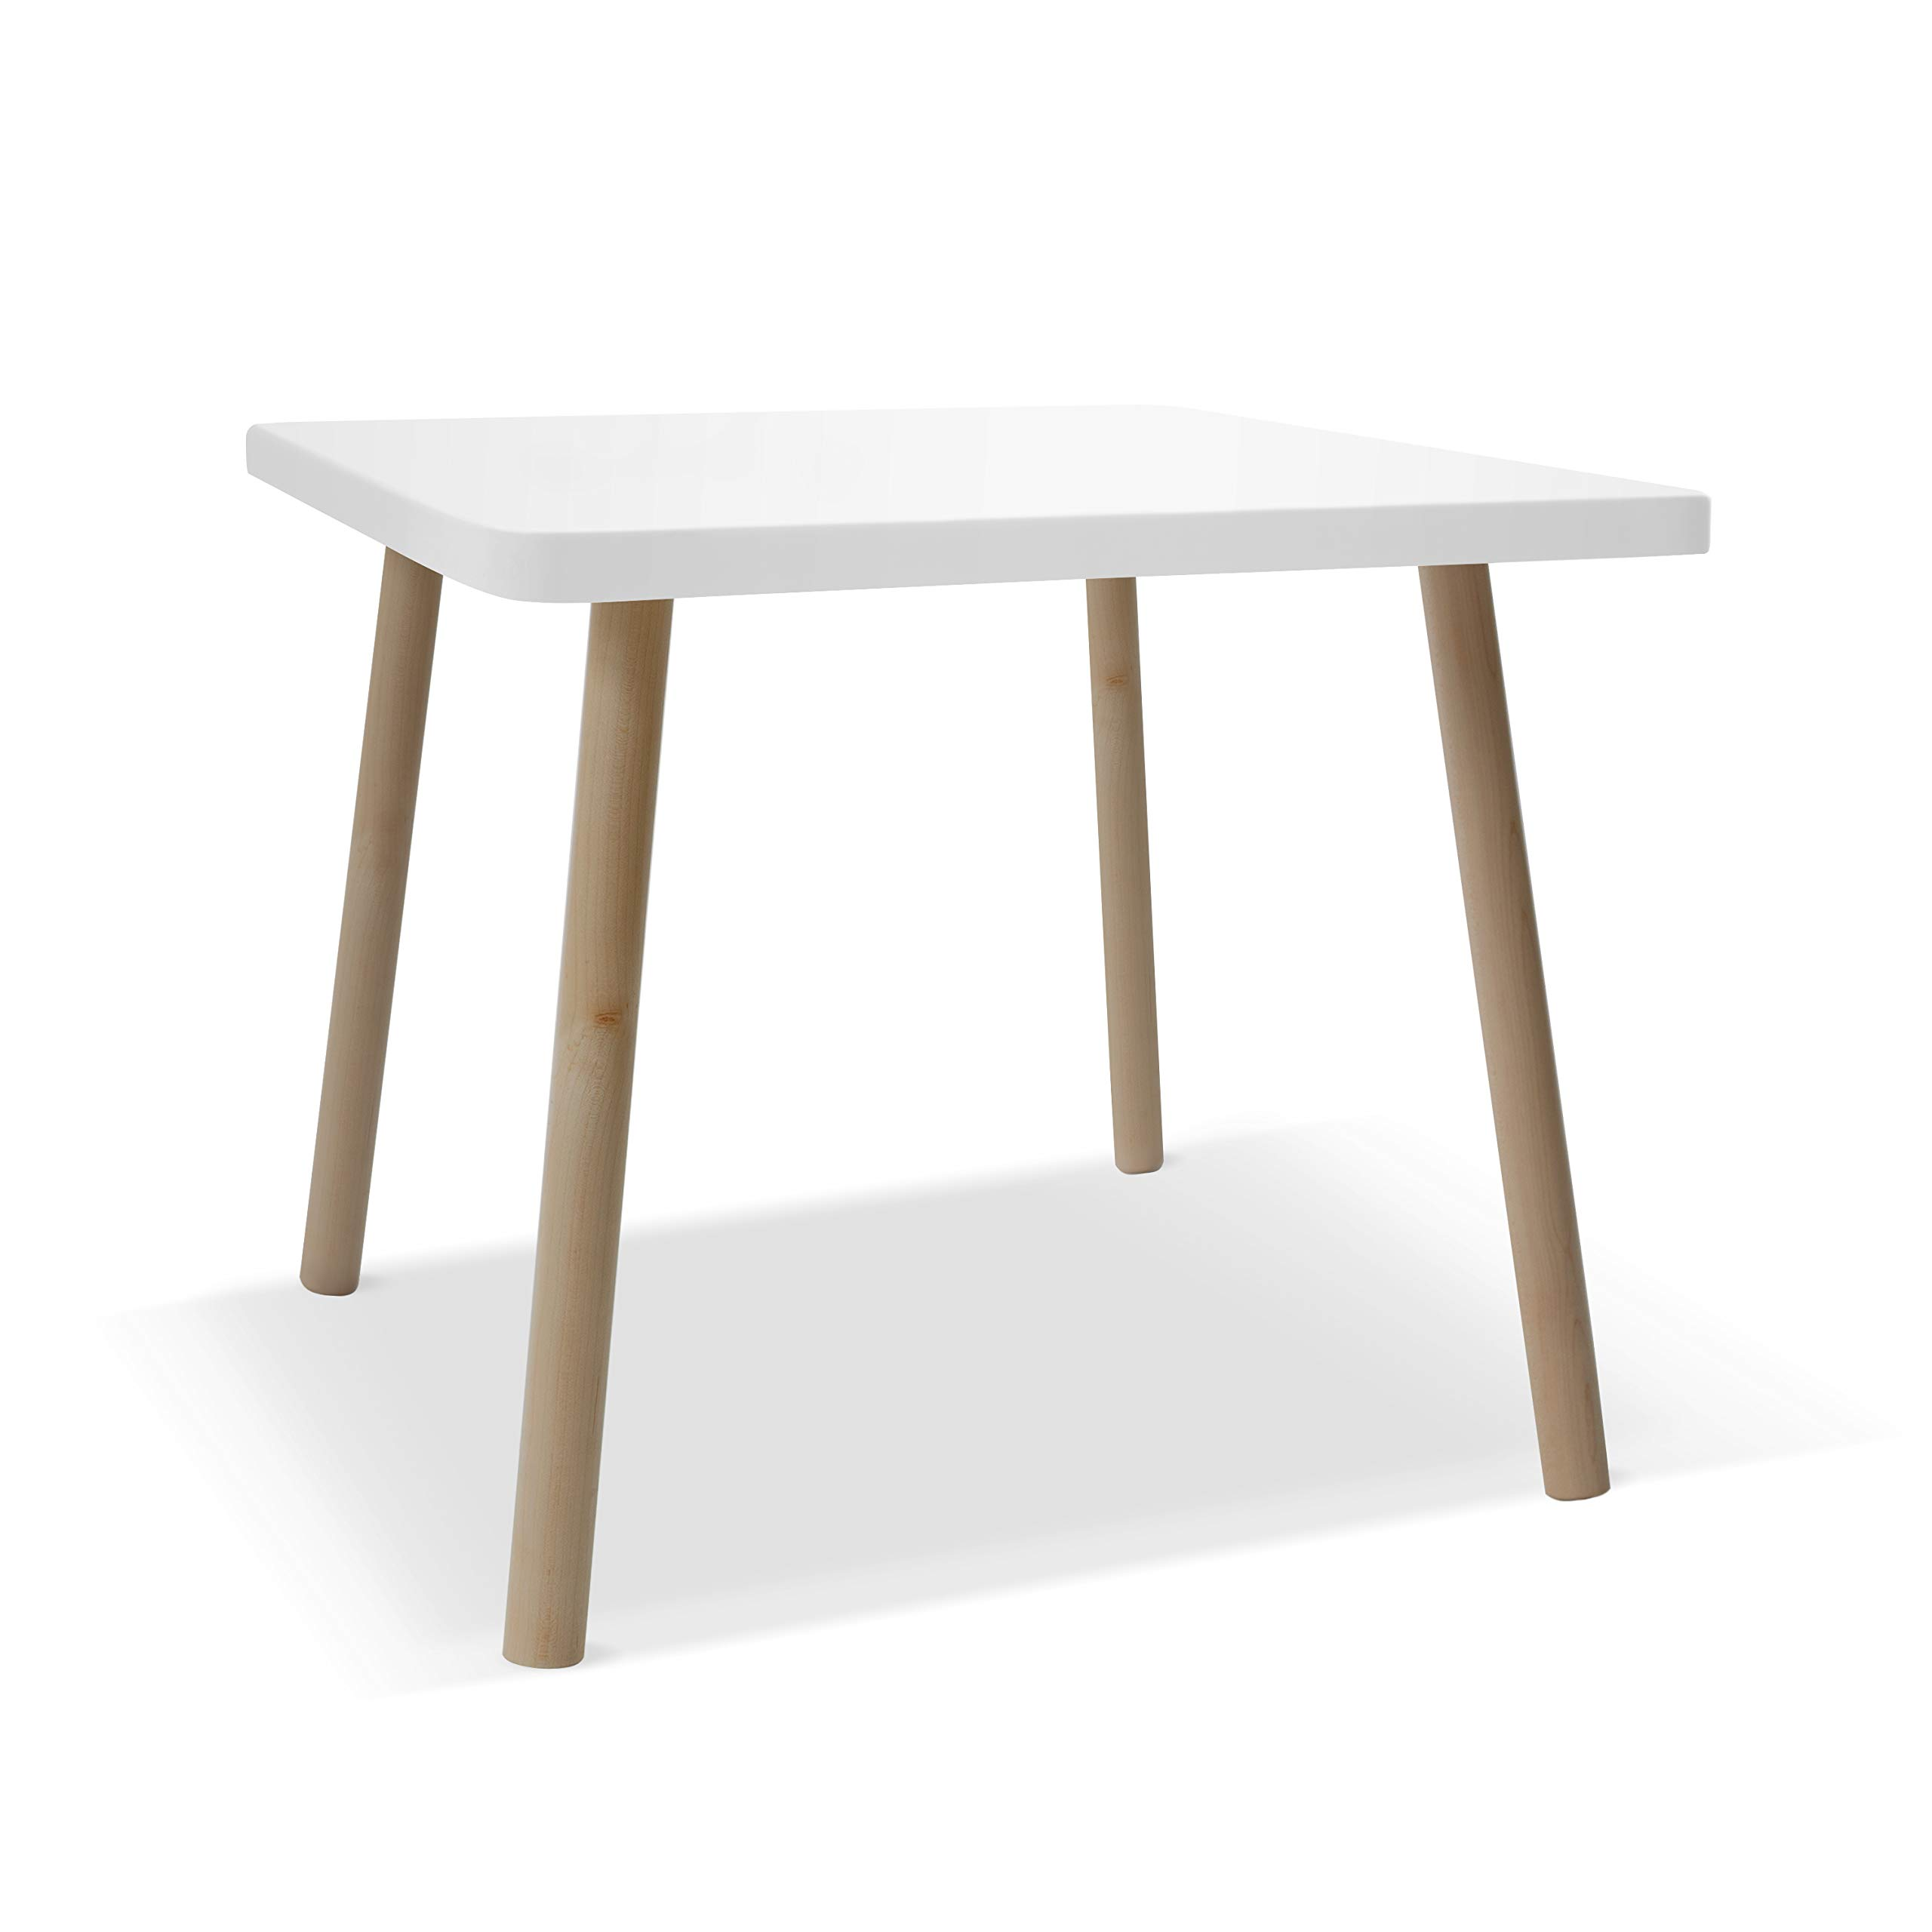 Nico & Yeye Tippy Toe Small Square 23.5'' Kids Table, Maple with White Accent, Custom Made to Order by Nico & Yeye